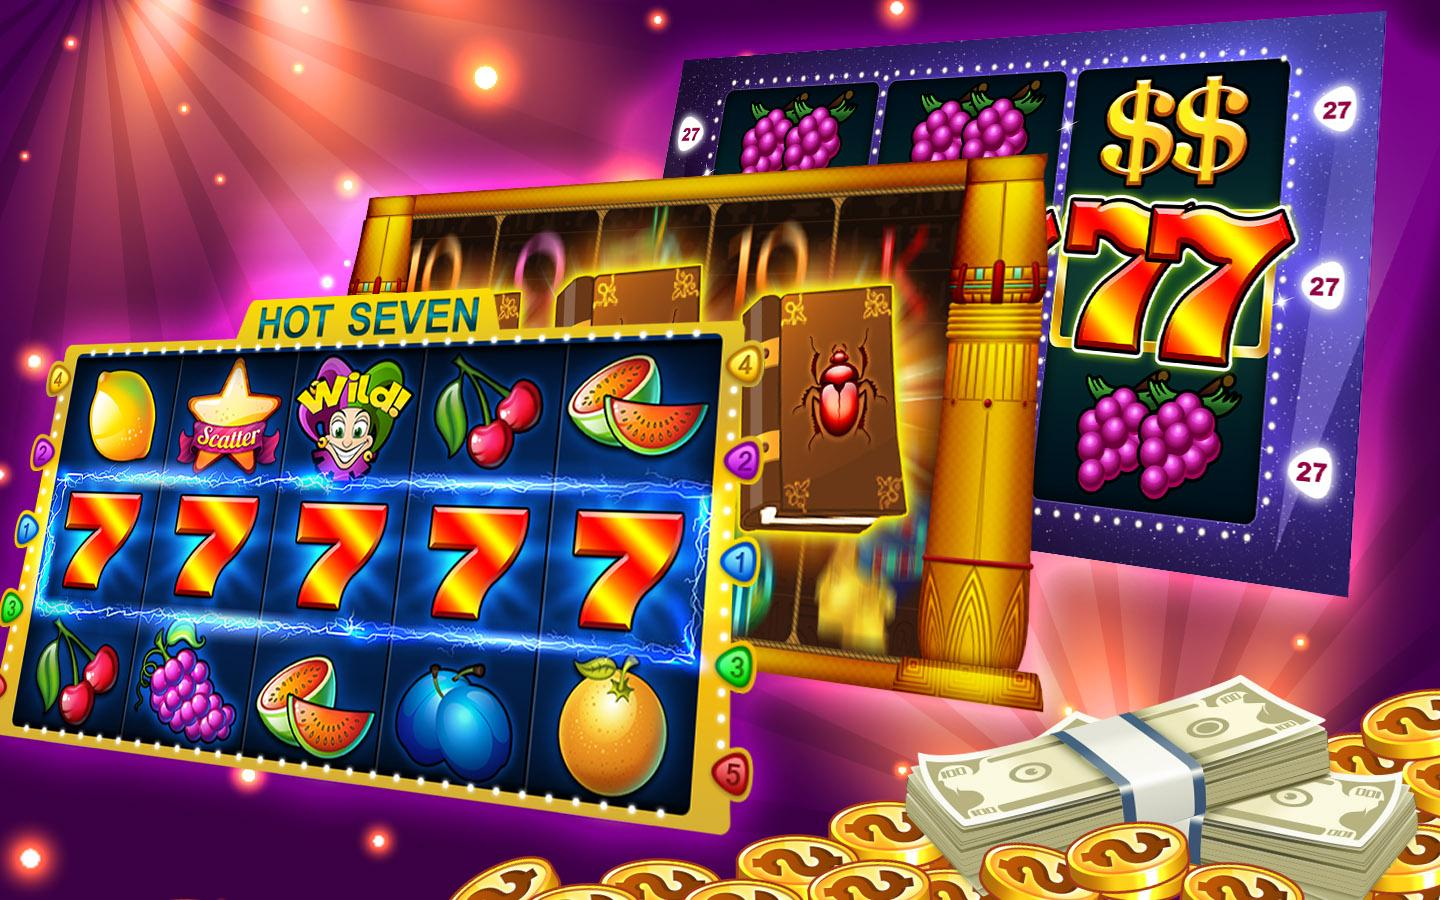 Phoenixs Fruits Slot Machine - Play for Free & Win for Real